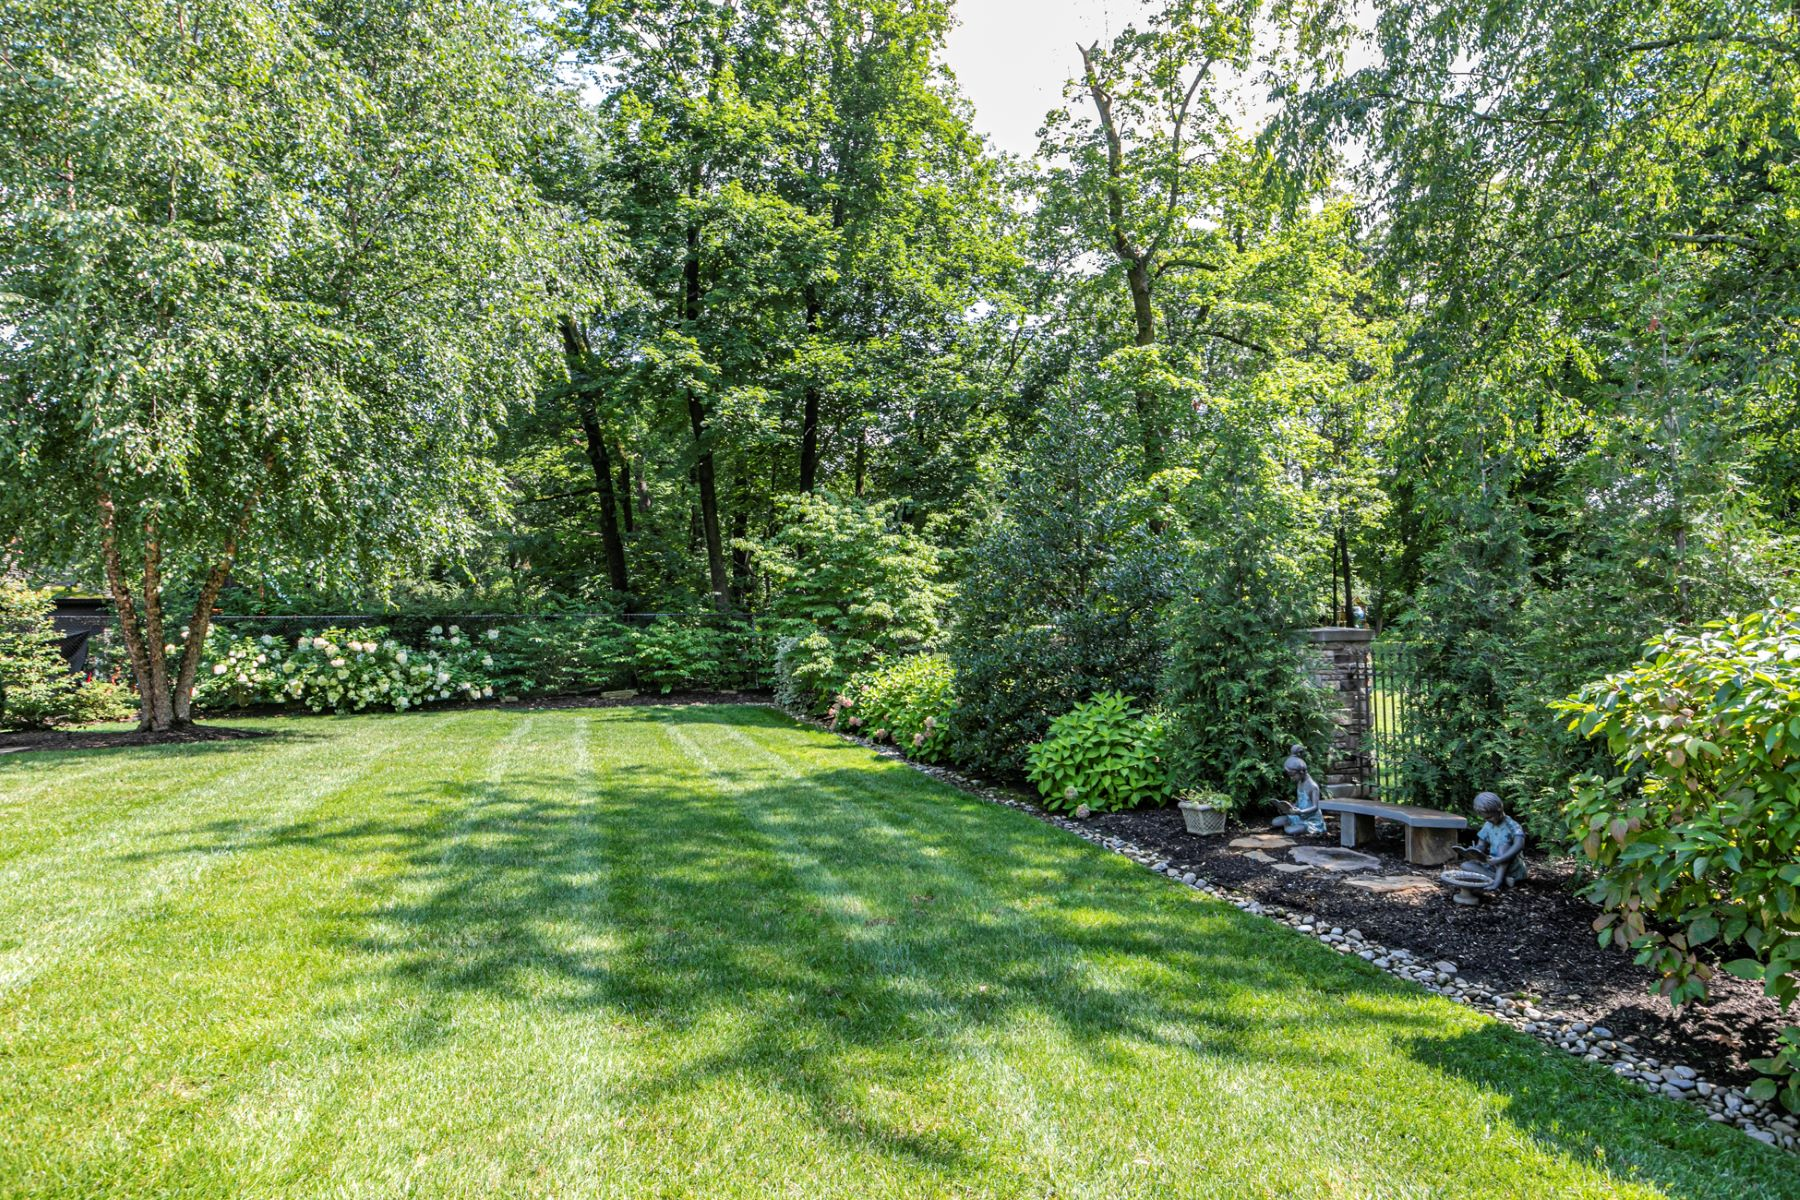 Additional photo for property listing at Heirloom-Quality Details In Edgerstoune Estate 220 Edgerstoune Road, Princeton, New Jersey 08540 United States